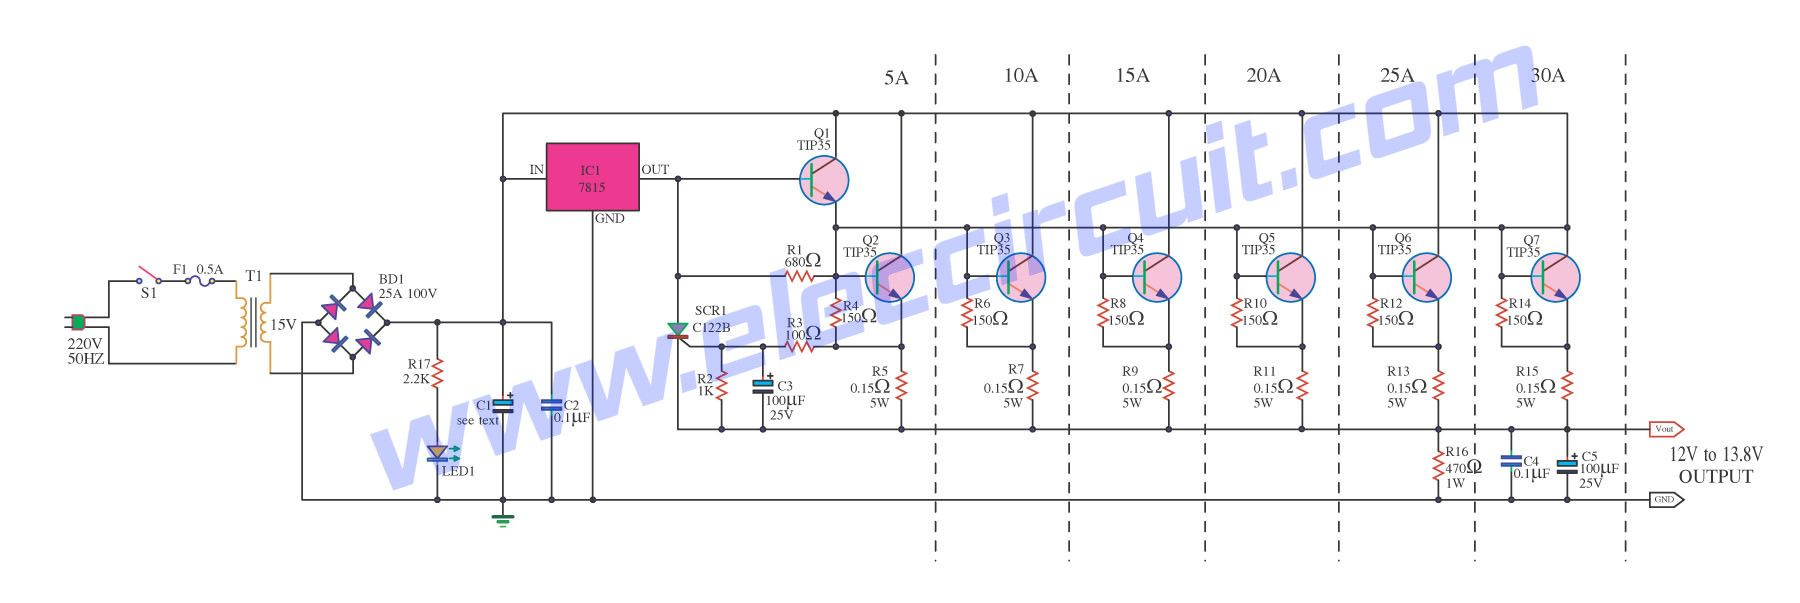 small resolution of power supply circuit power out variables ham radio